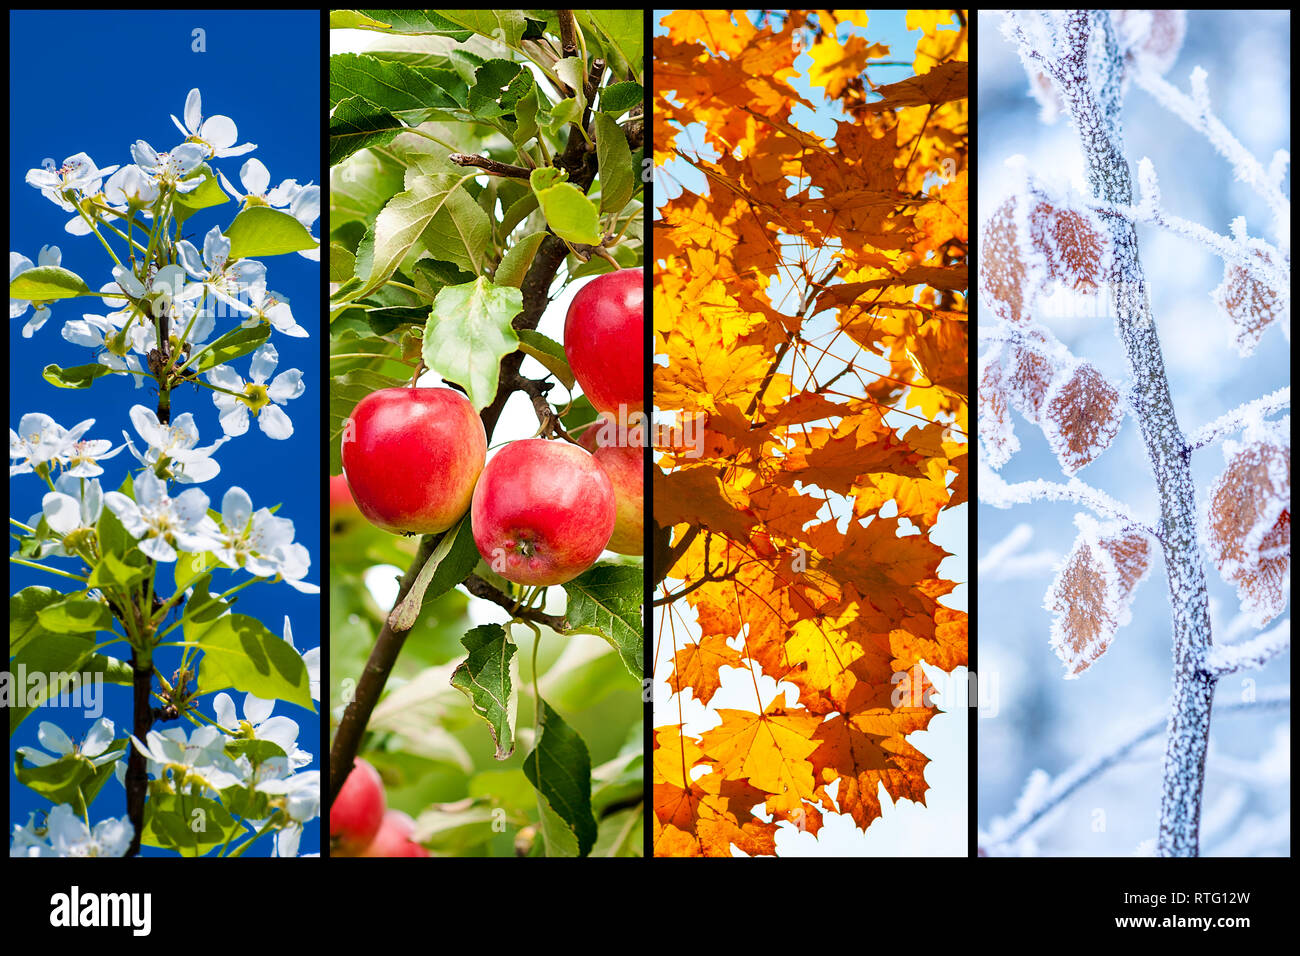 Collage of four pictures representing each season: spring, summer, autumn and winter. - Stock Image